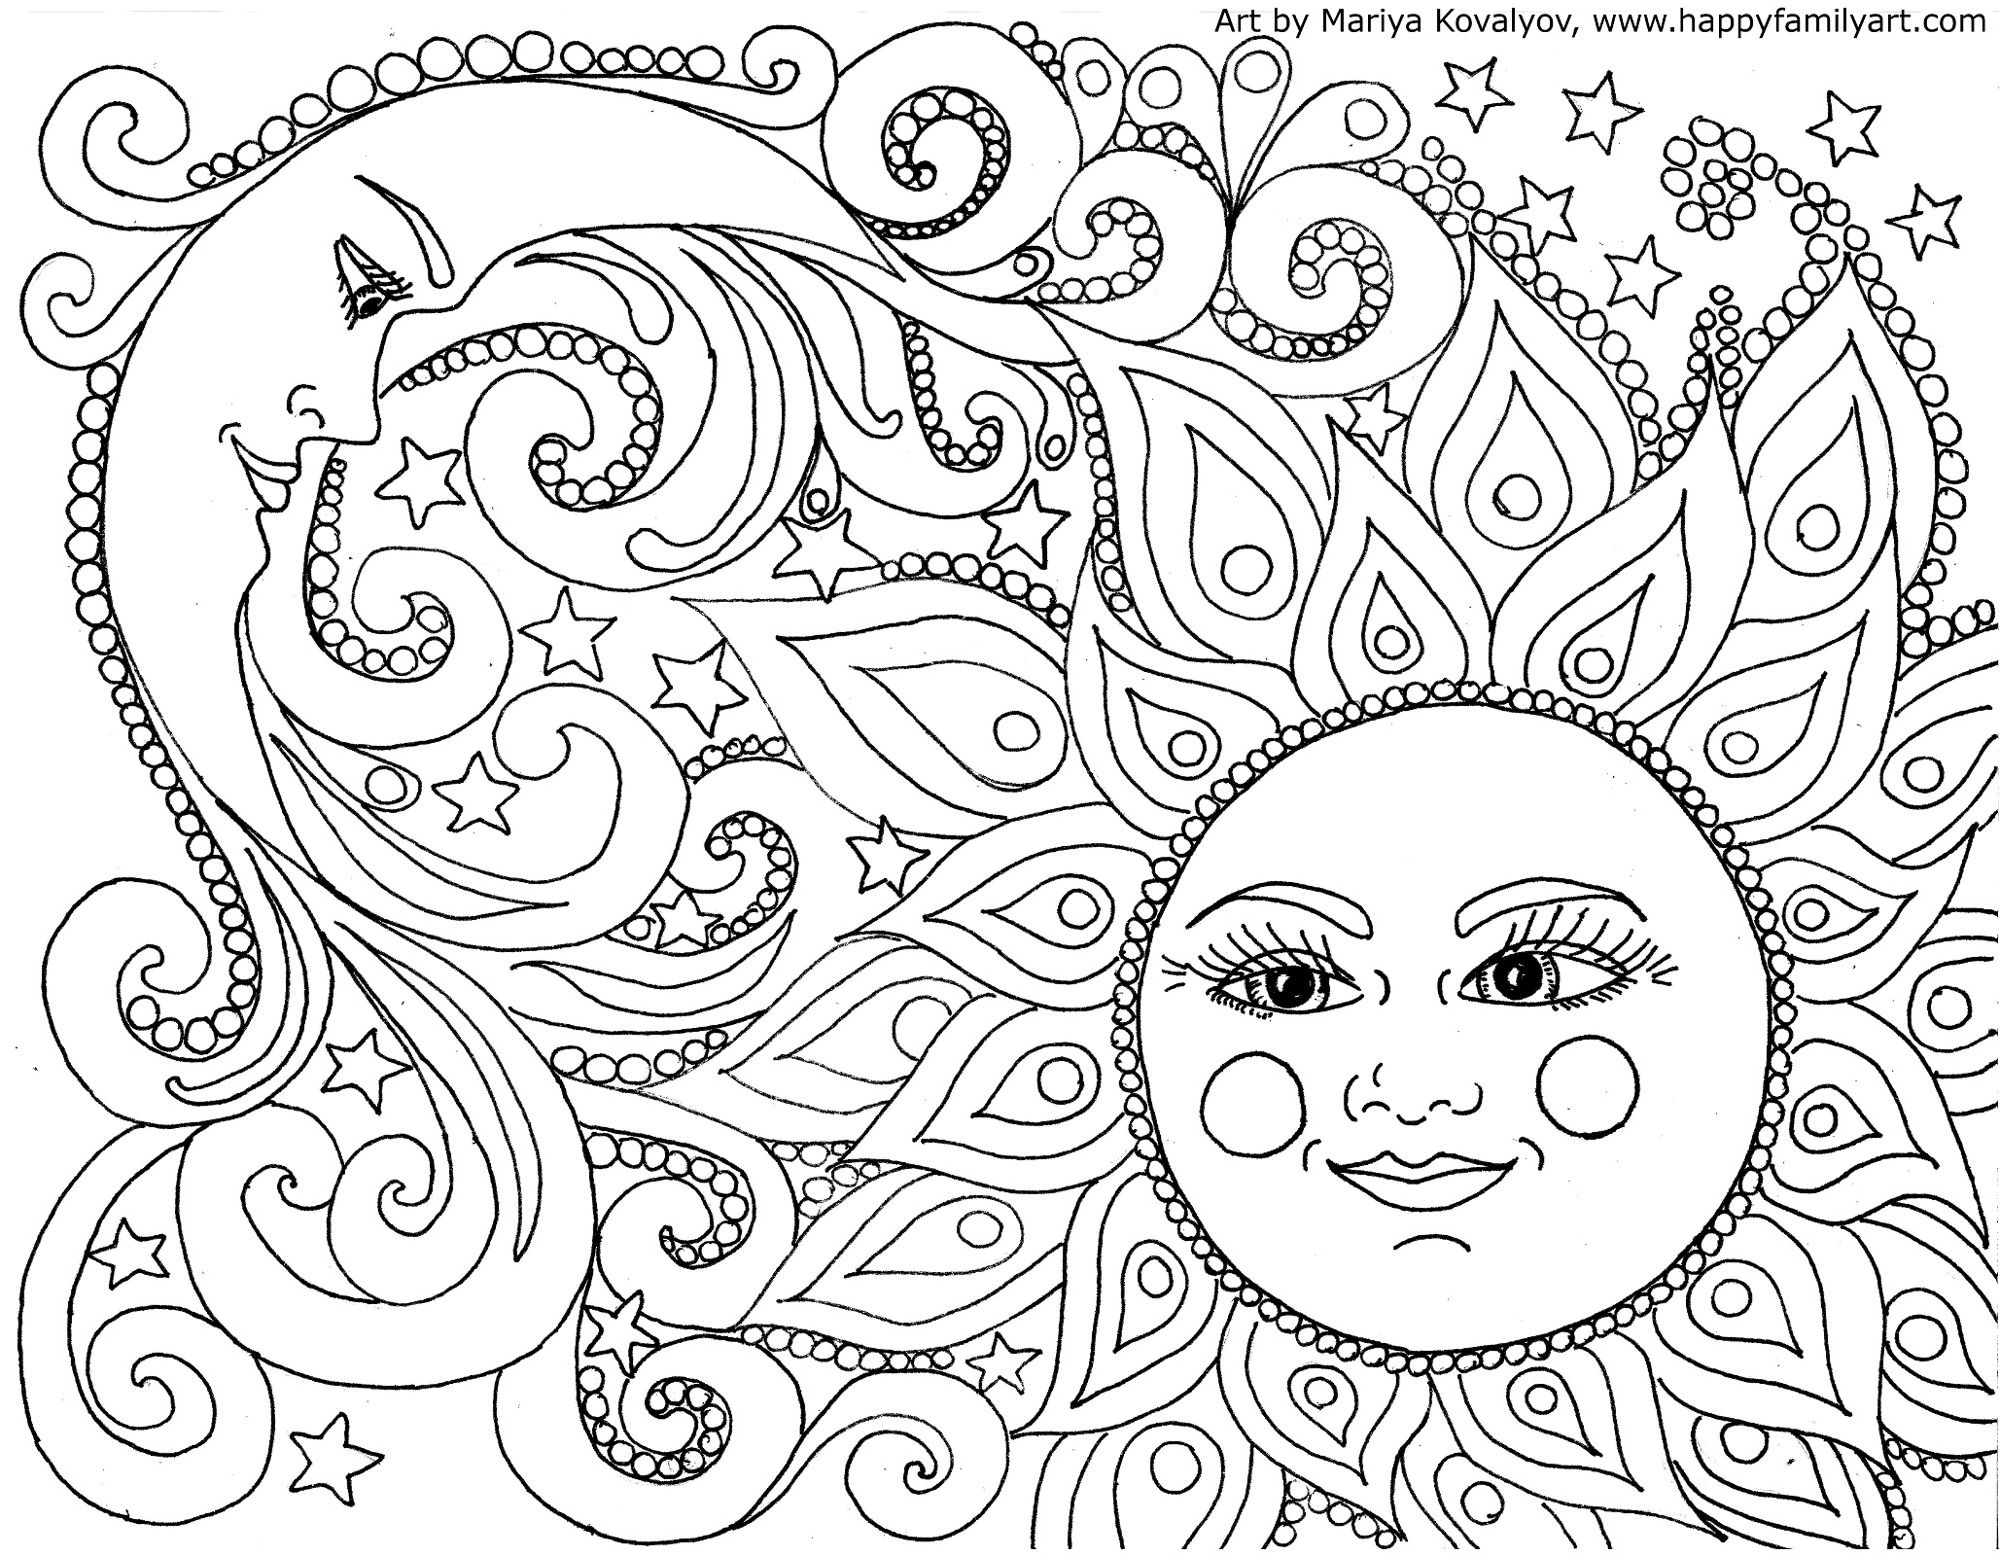 i made many great fun and original coloring pages color your heart out - Coloring Pg